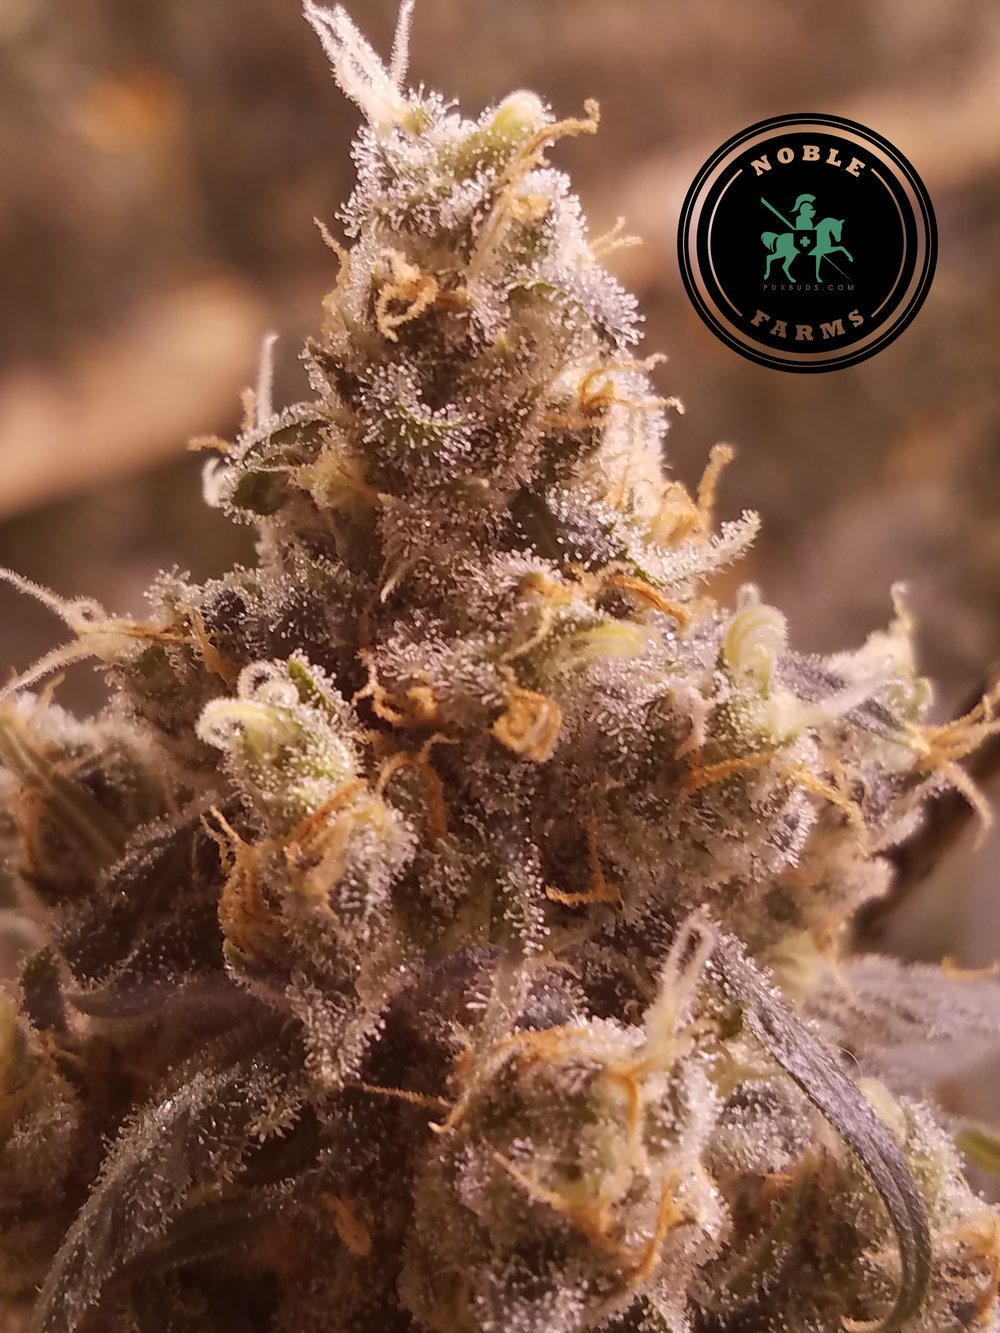 Jack Herer - - Northern Lights #5 x Shiva SkunkSativa